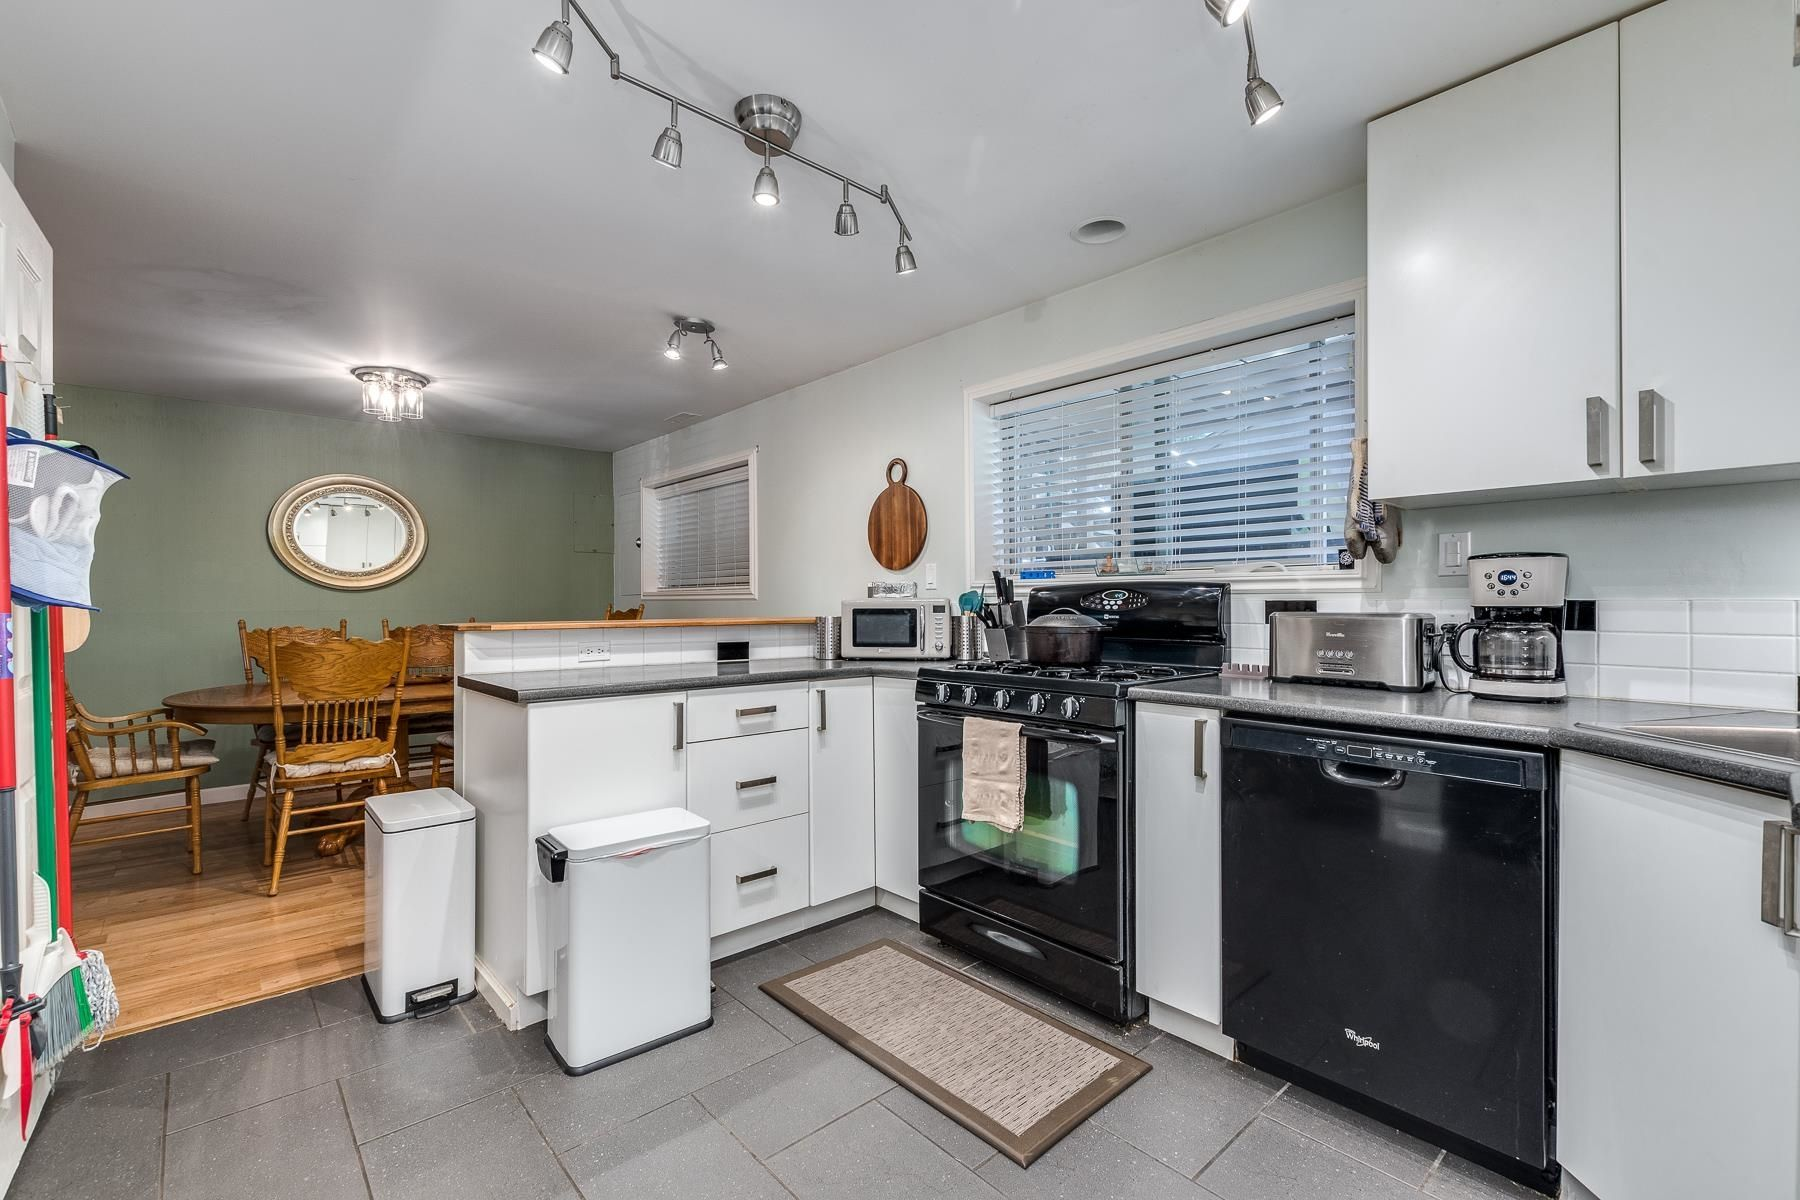 Photo 27: Photos: 3671 SOMERSET Street in Port Coquitlam: Lincoln Park PQ House for sale : MLS®# R2610216